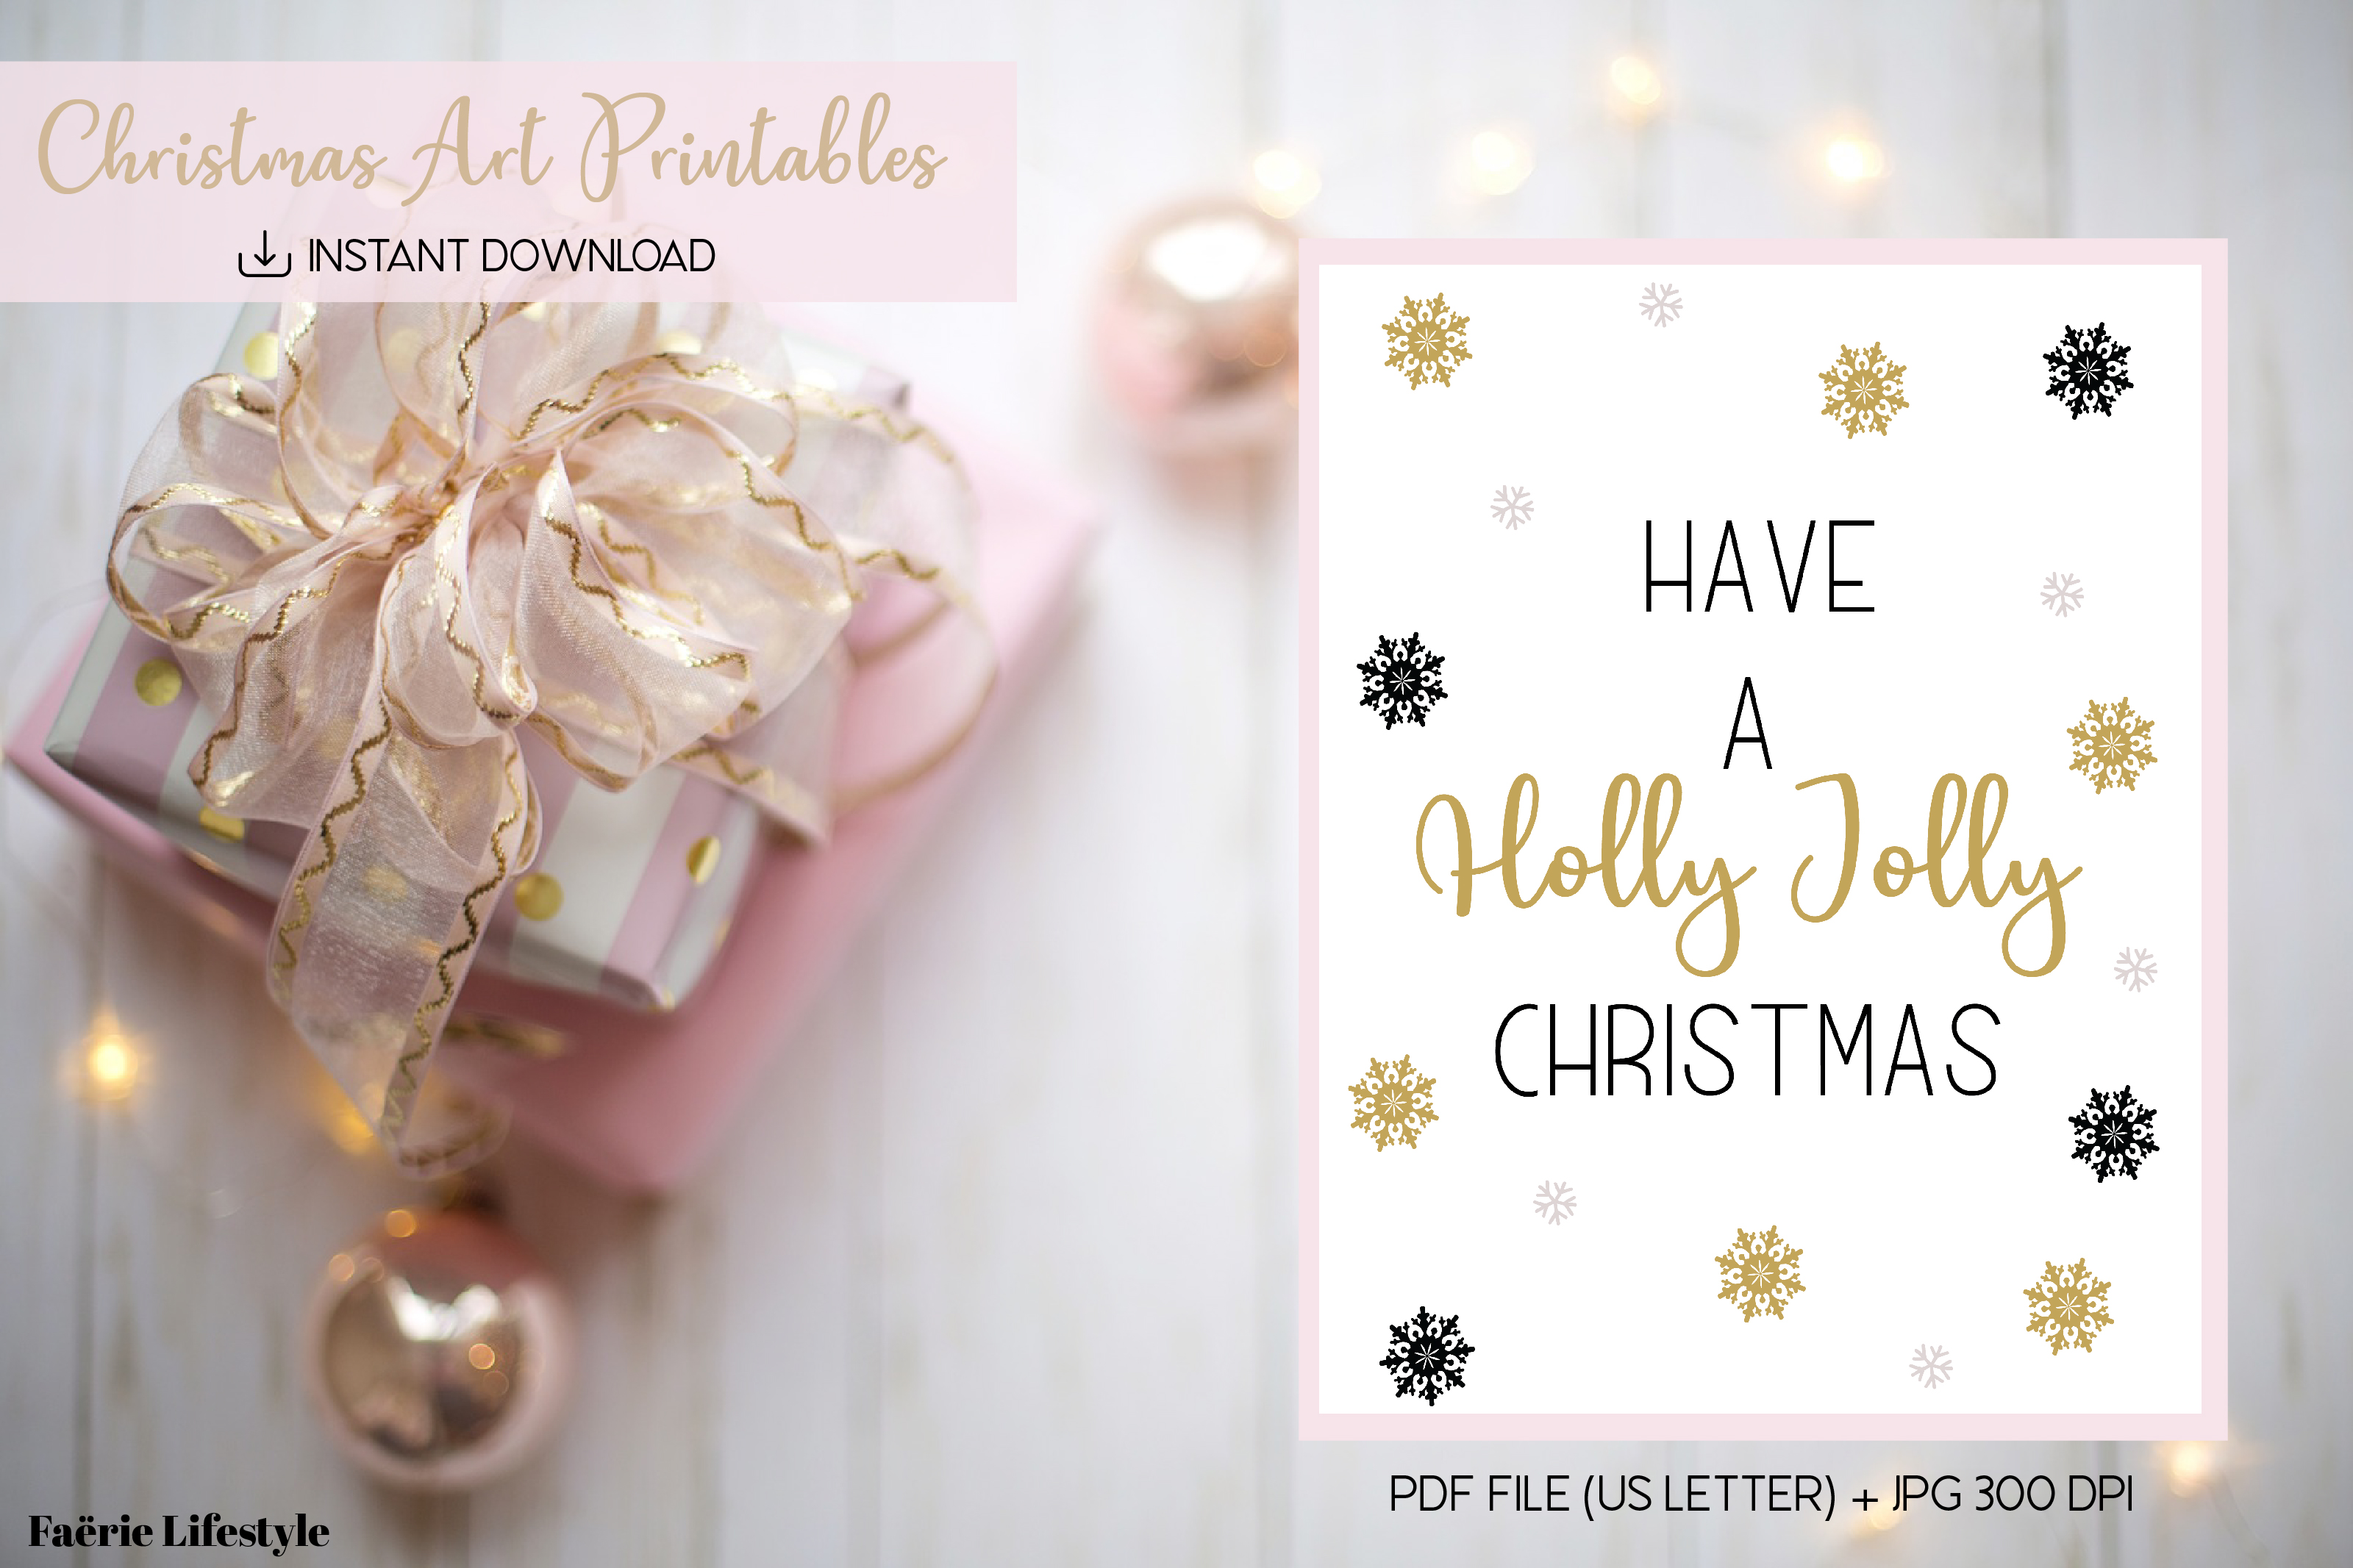 Holly Jolly Christmas Printable Art Graphic By Faerie Lifestyle